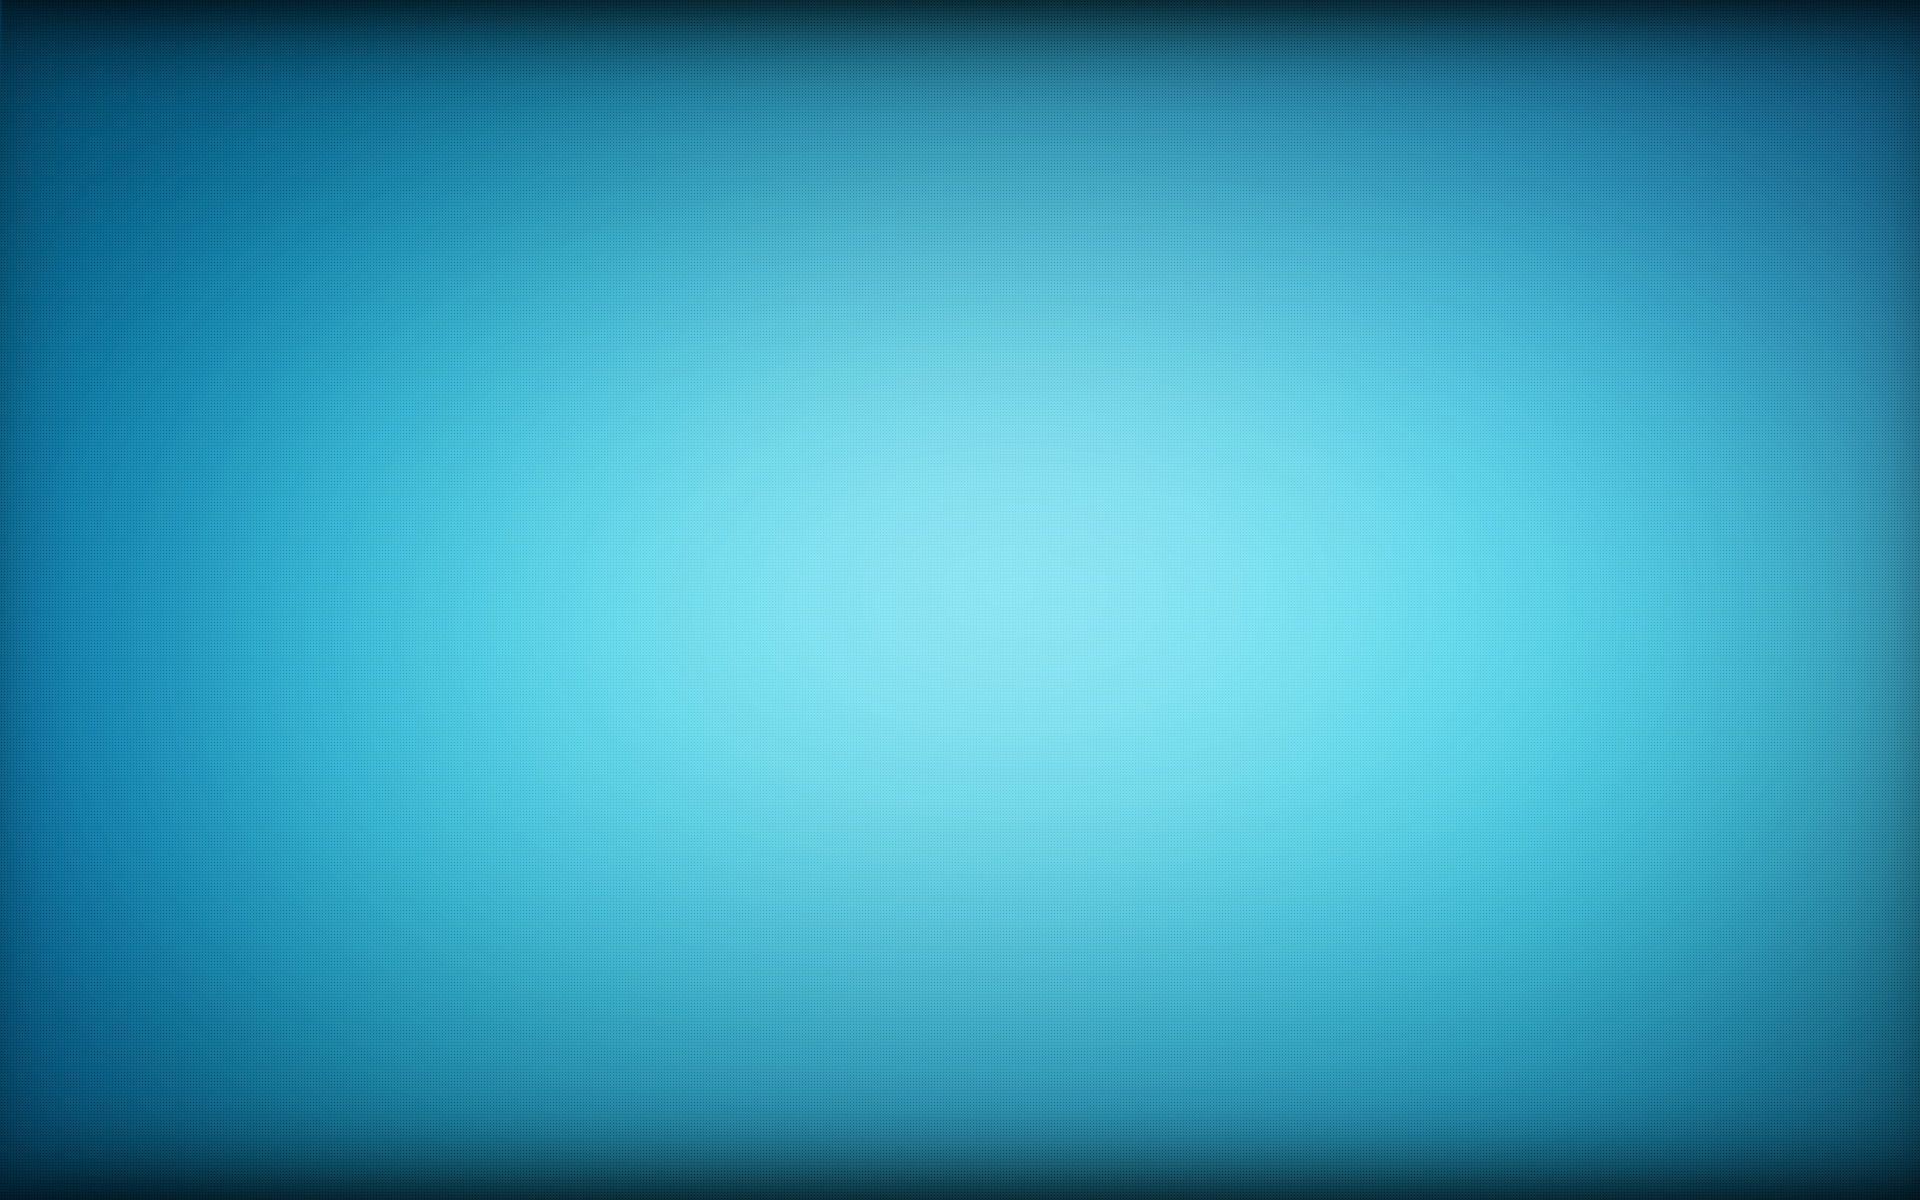 Blue texture wallpaper 13544 1920x1200